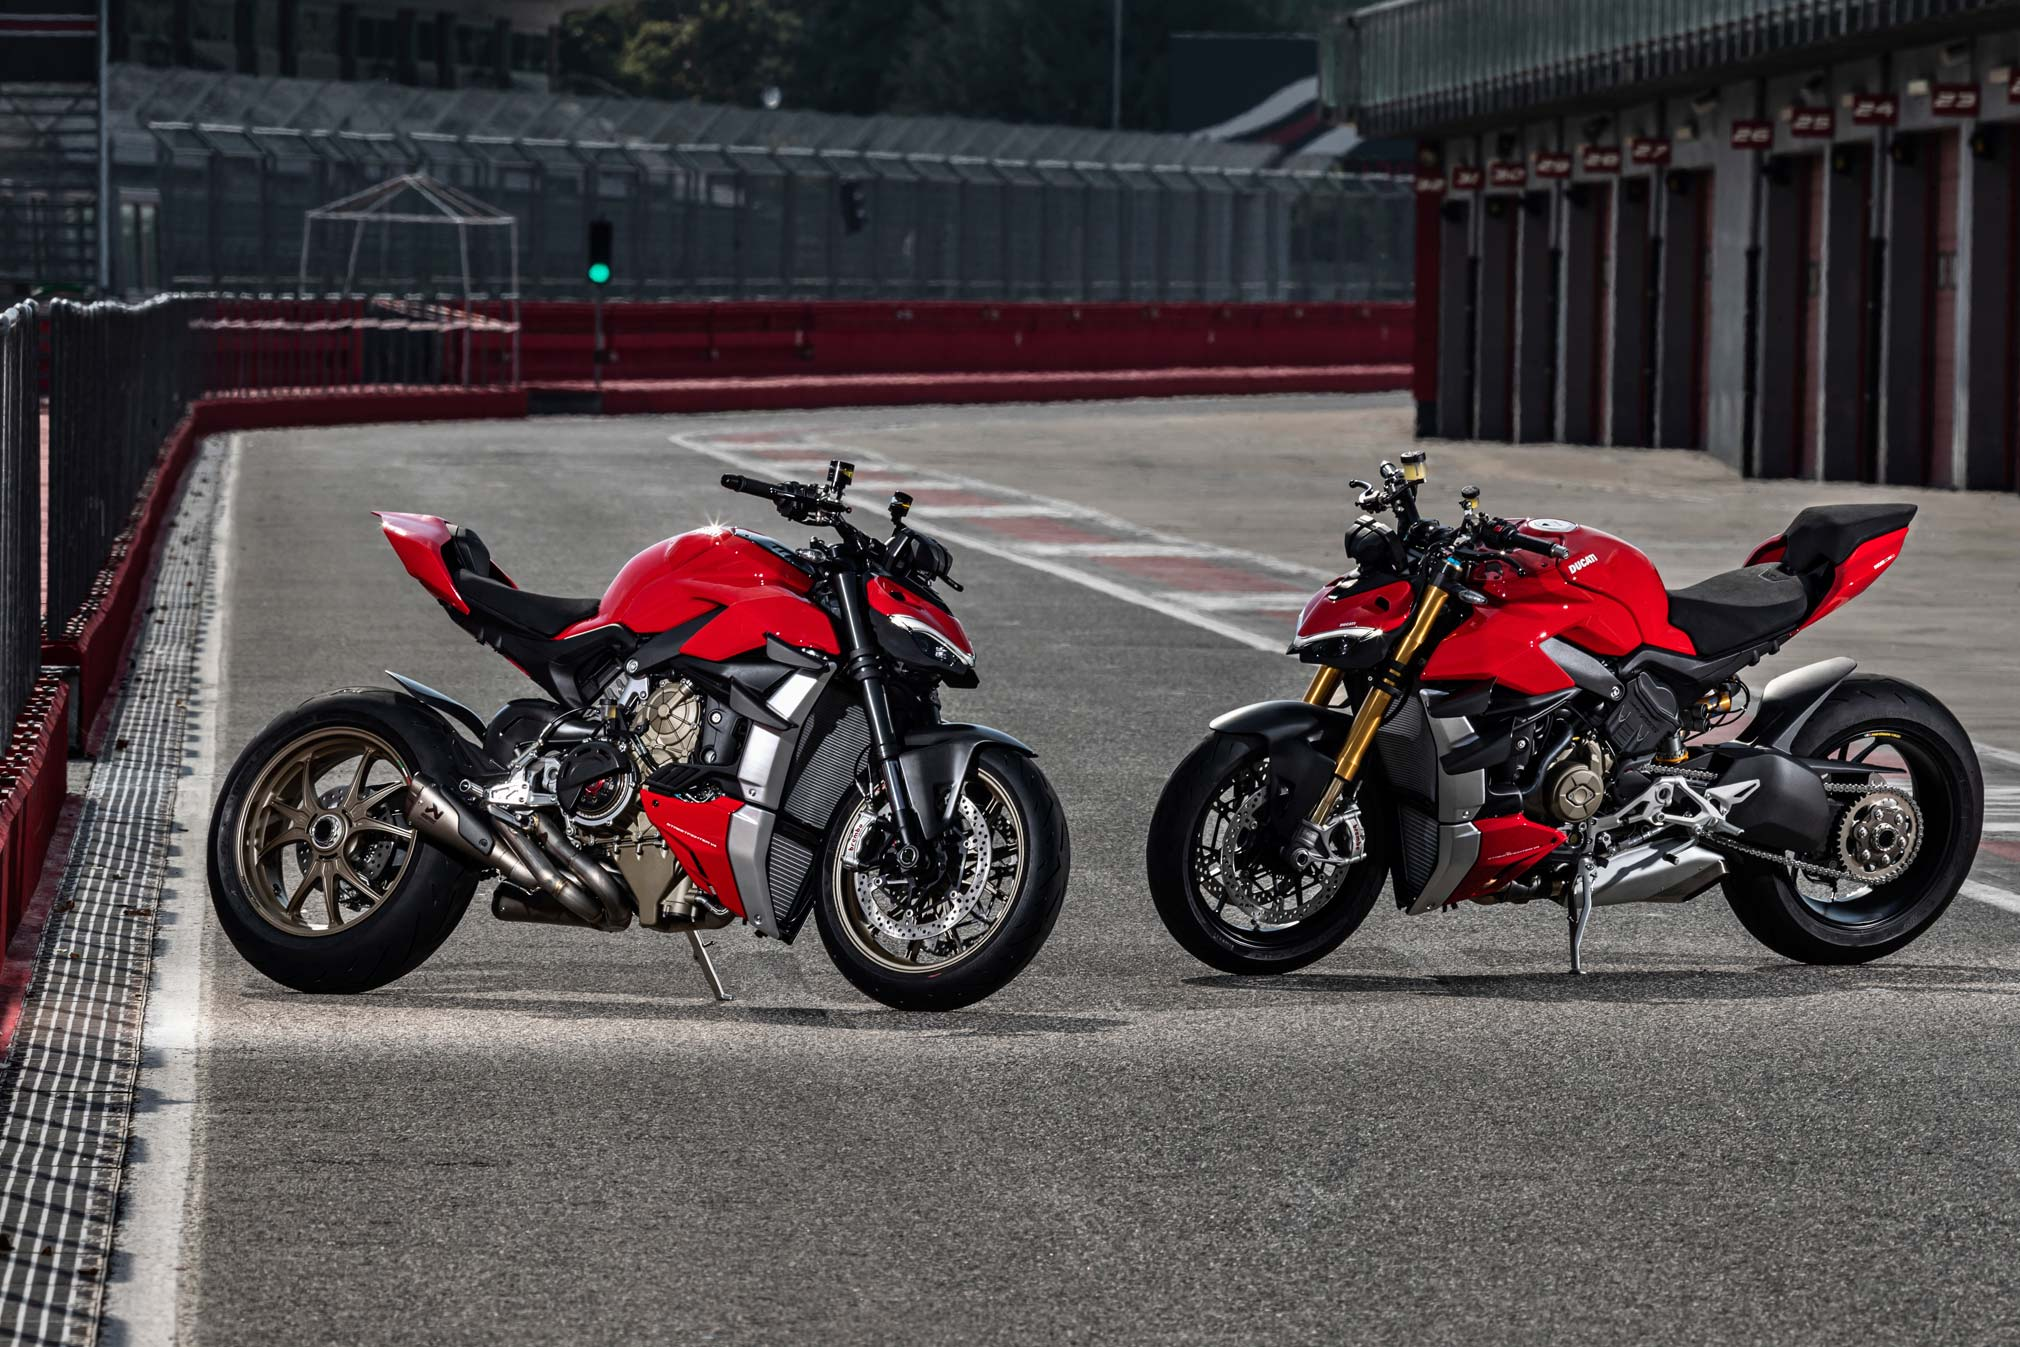 2021 Ducati Streetfighter V4 Flywheel Recall